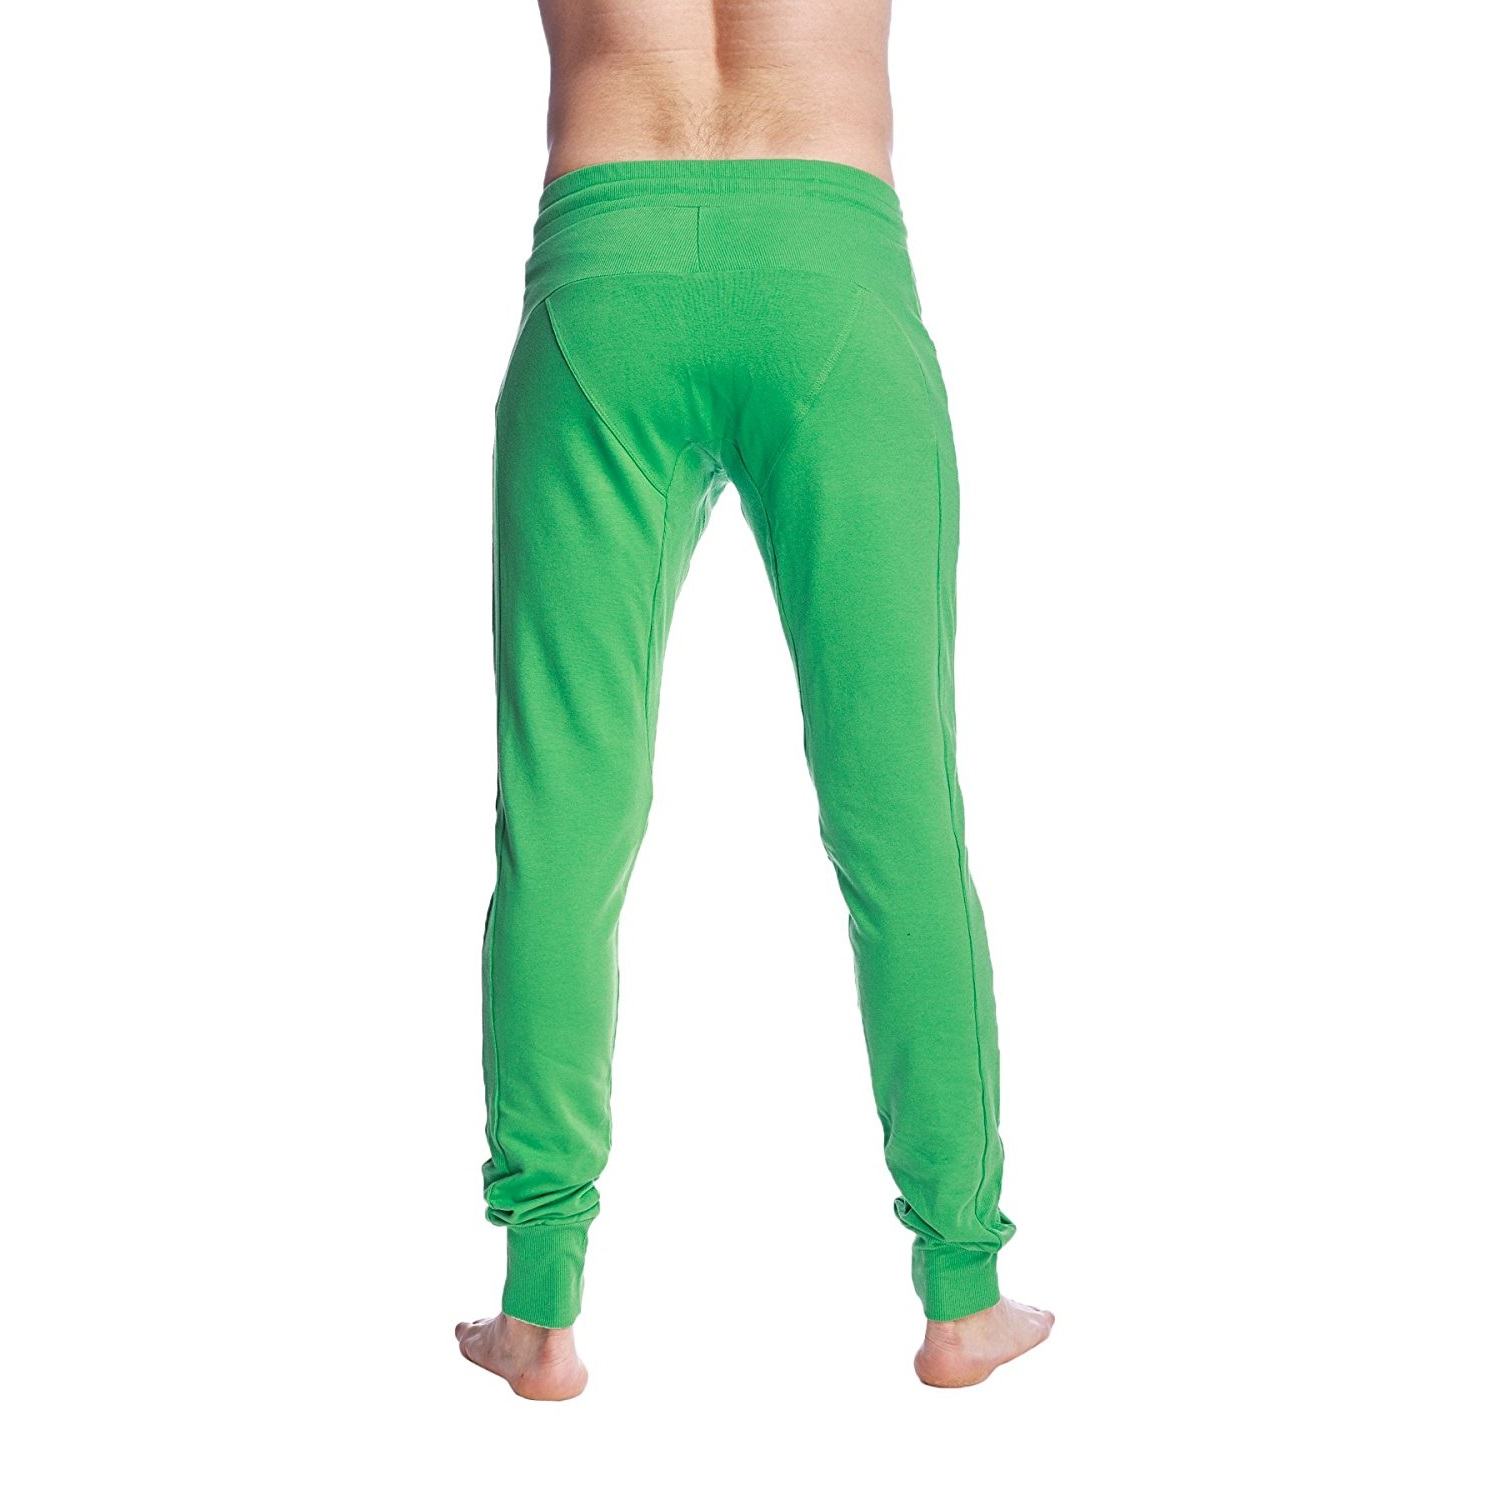 4-rth mens long cuffed jogger yoga pants